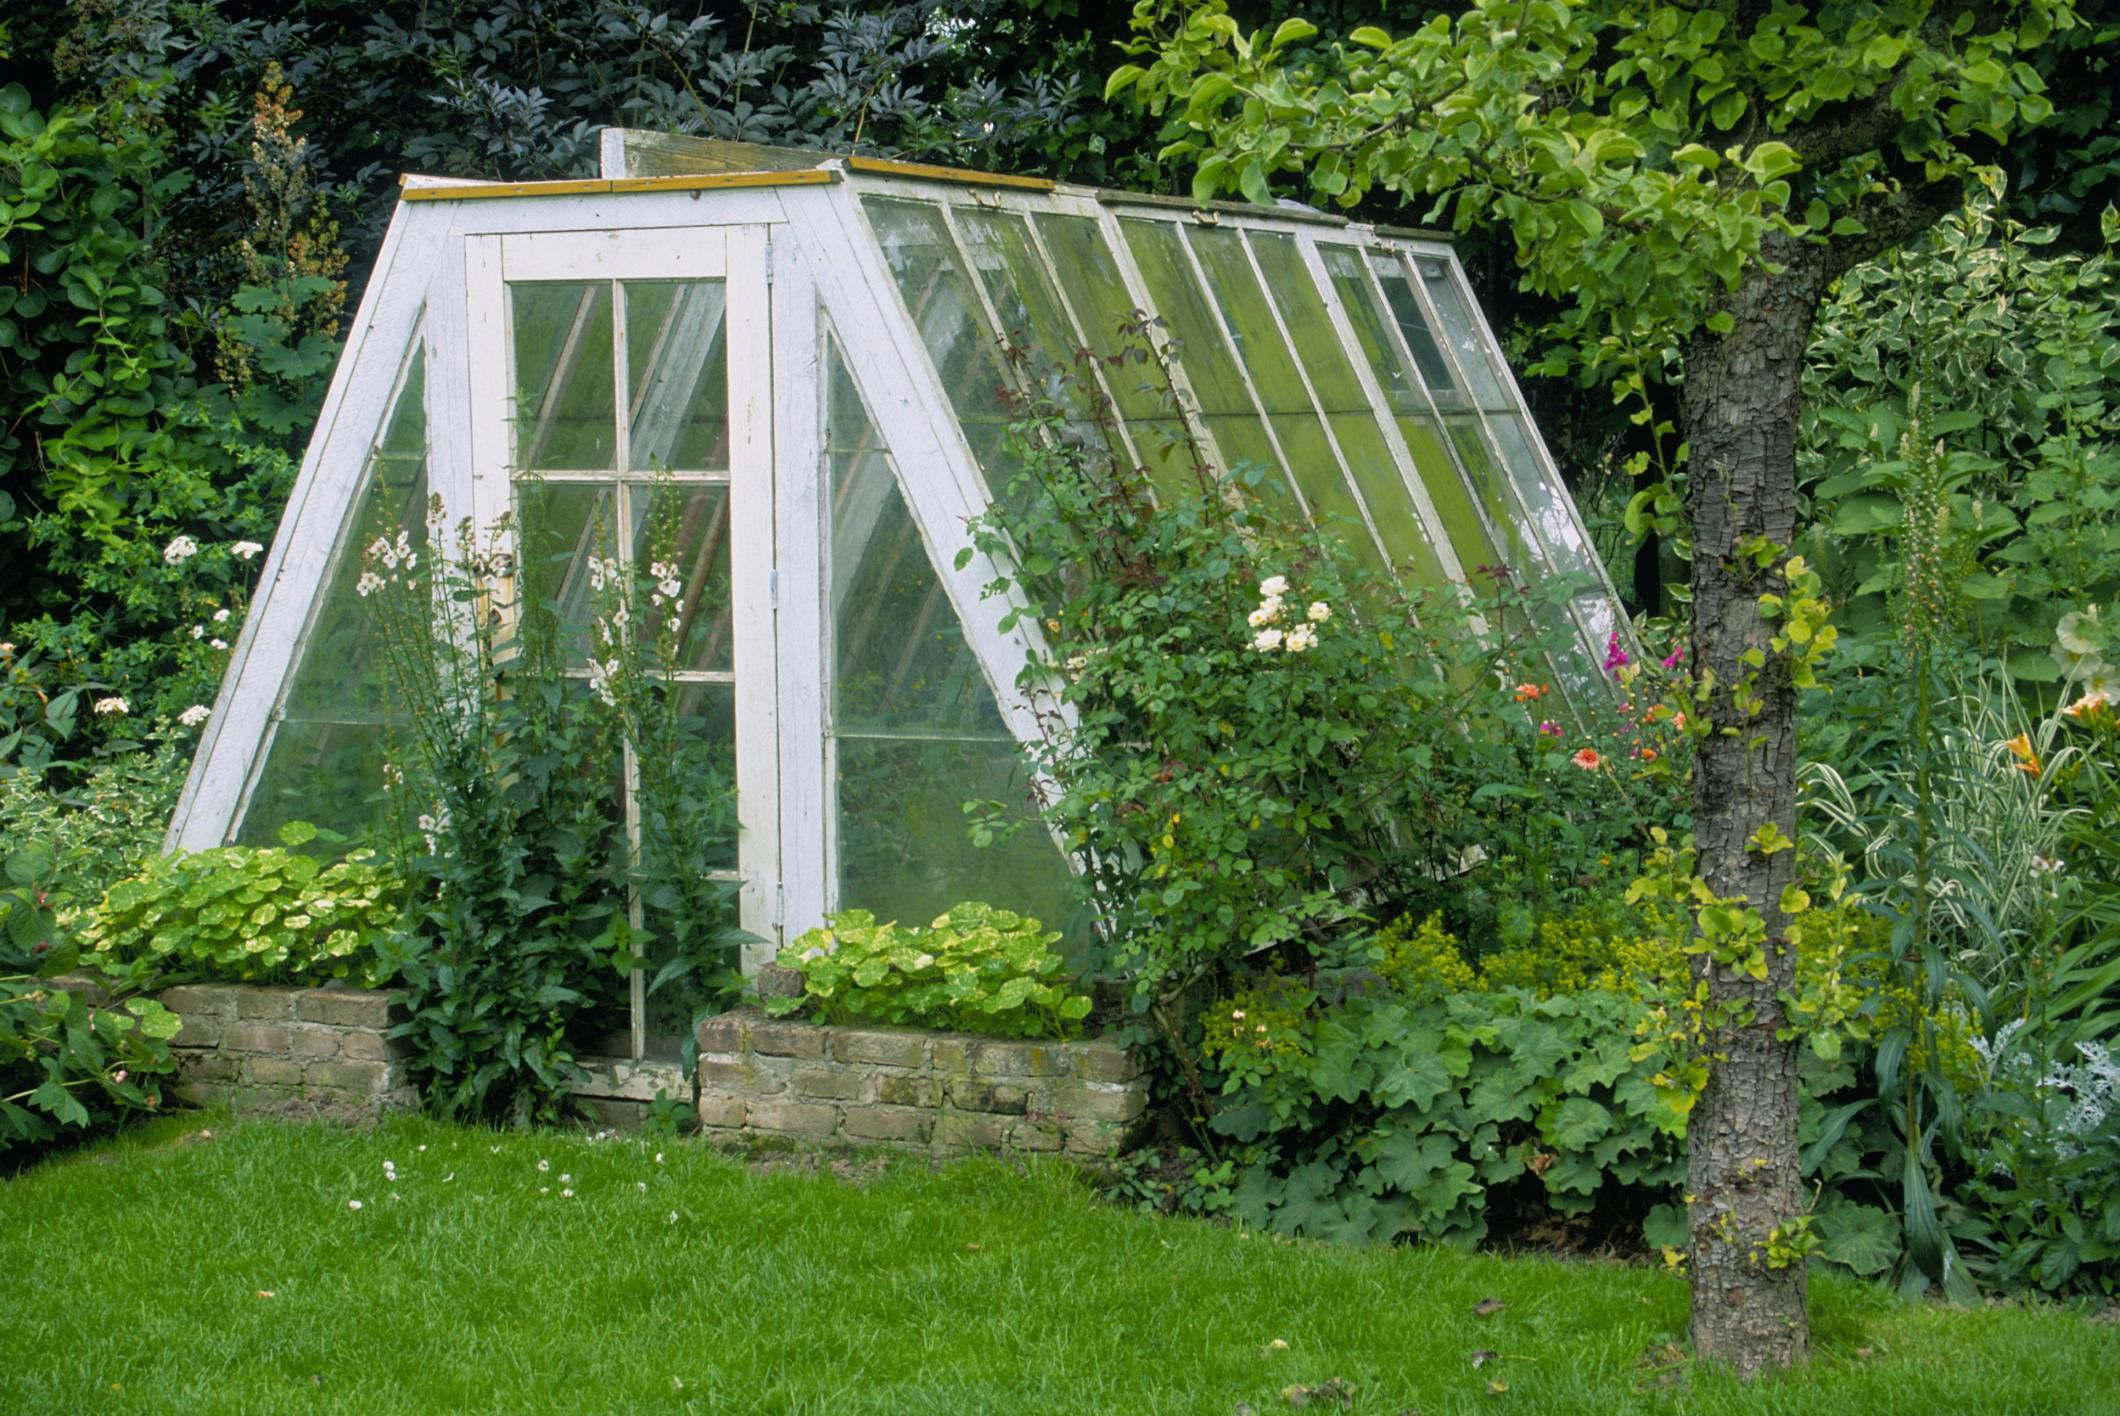 before you buy or build a greenhouse